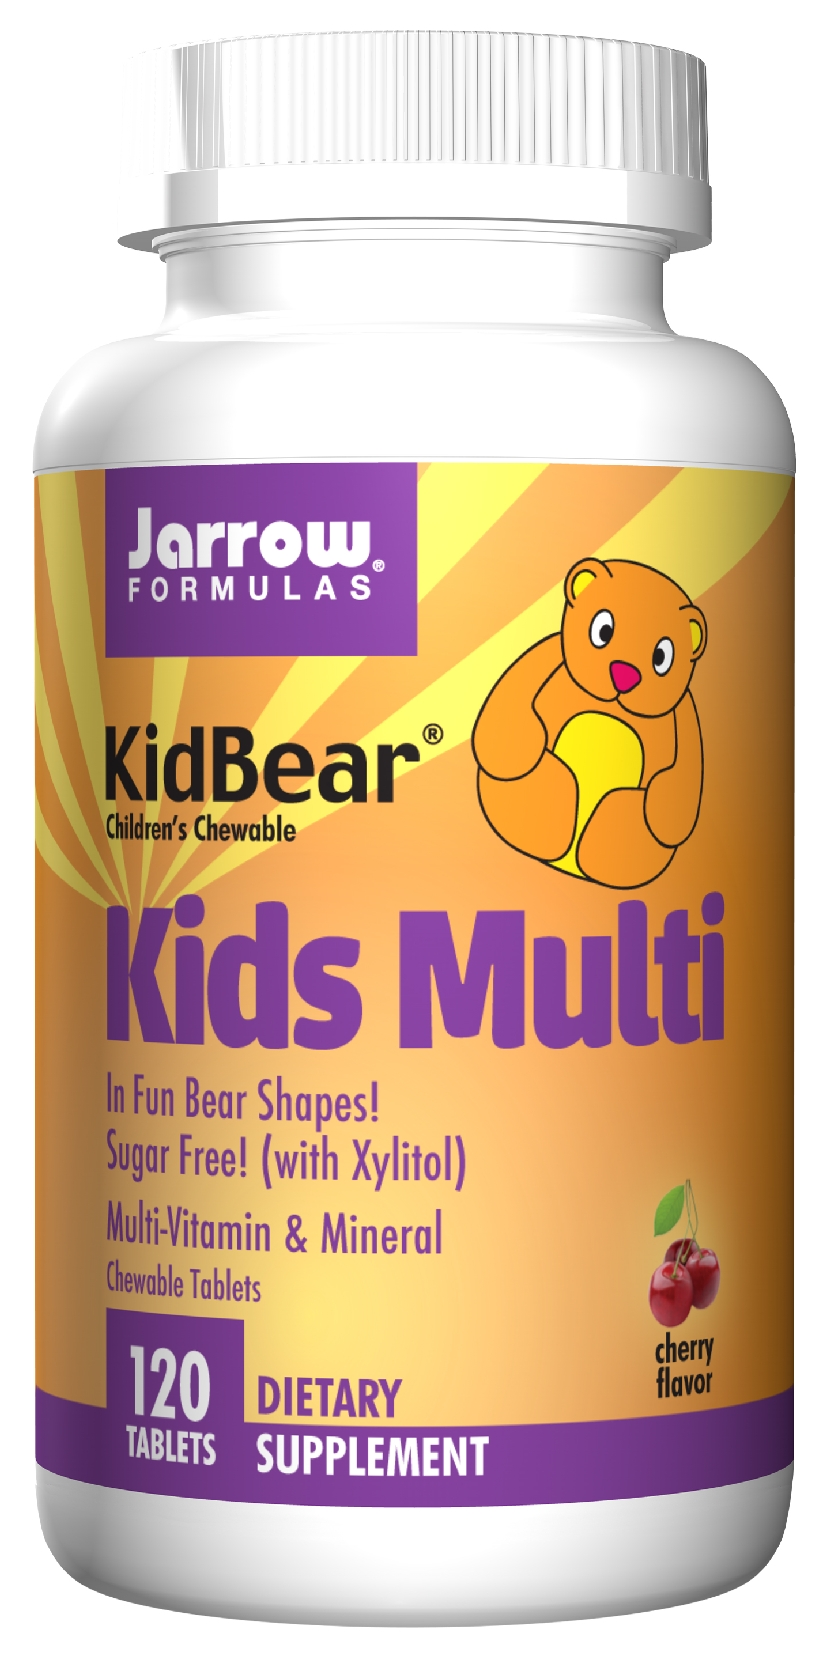 KidBear Kids Multi 120 Chewable tabs by Jarrow Formulas